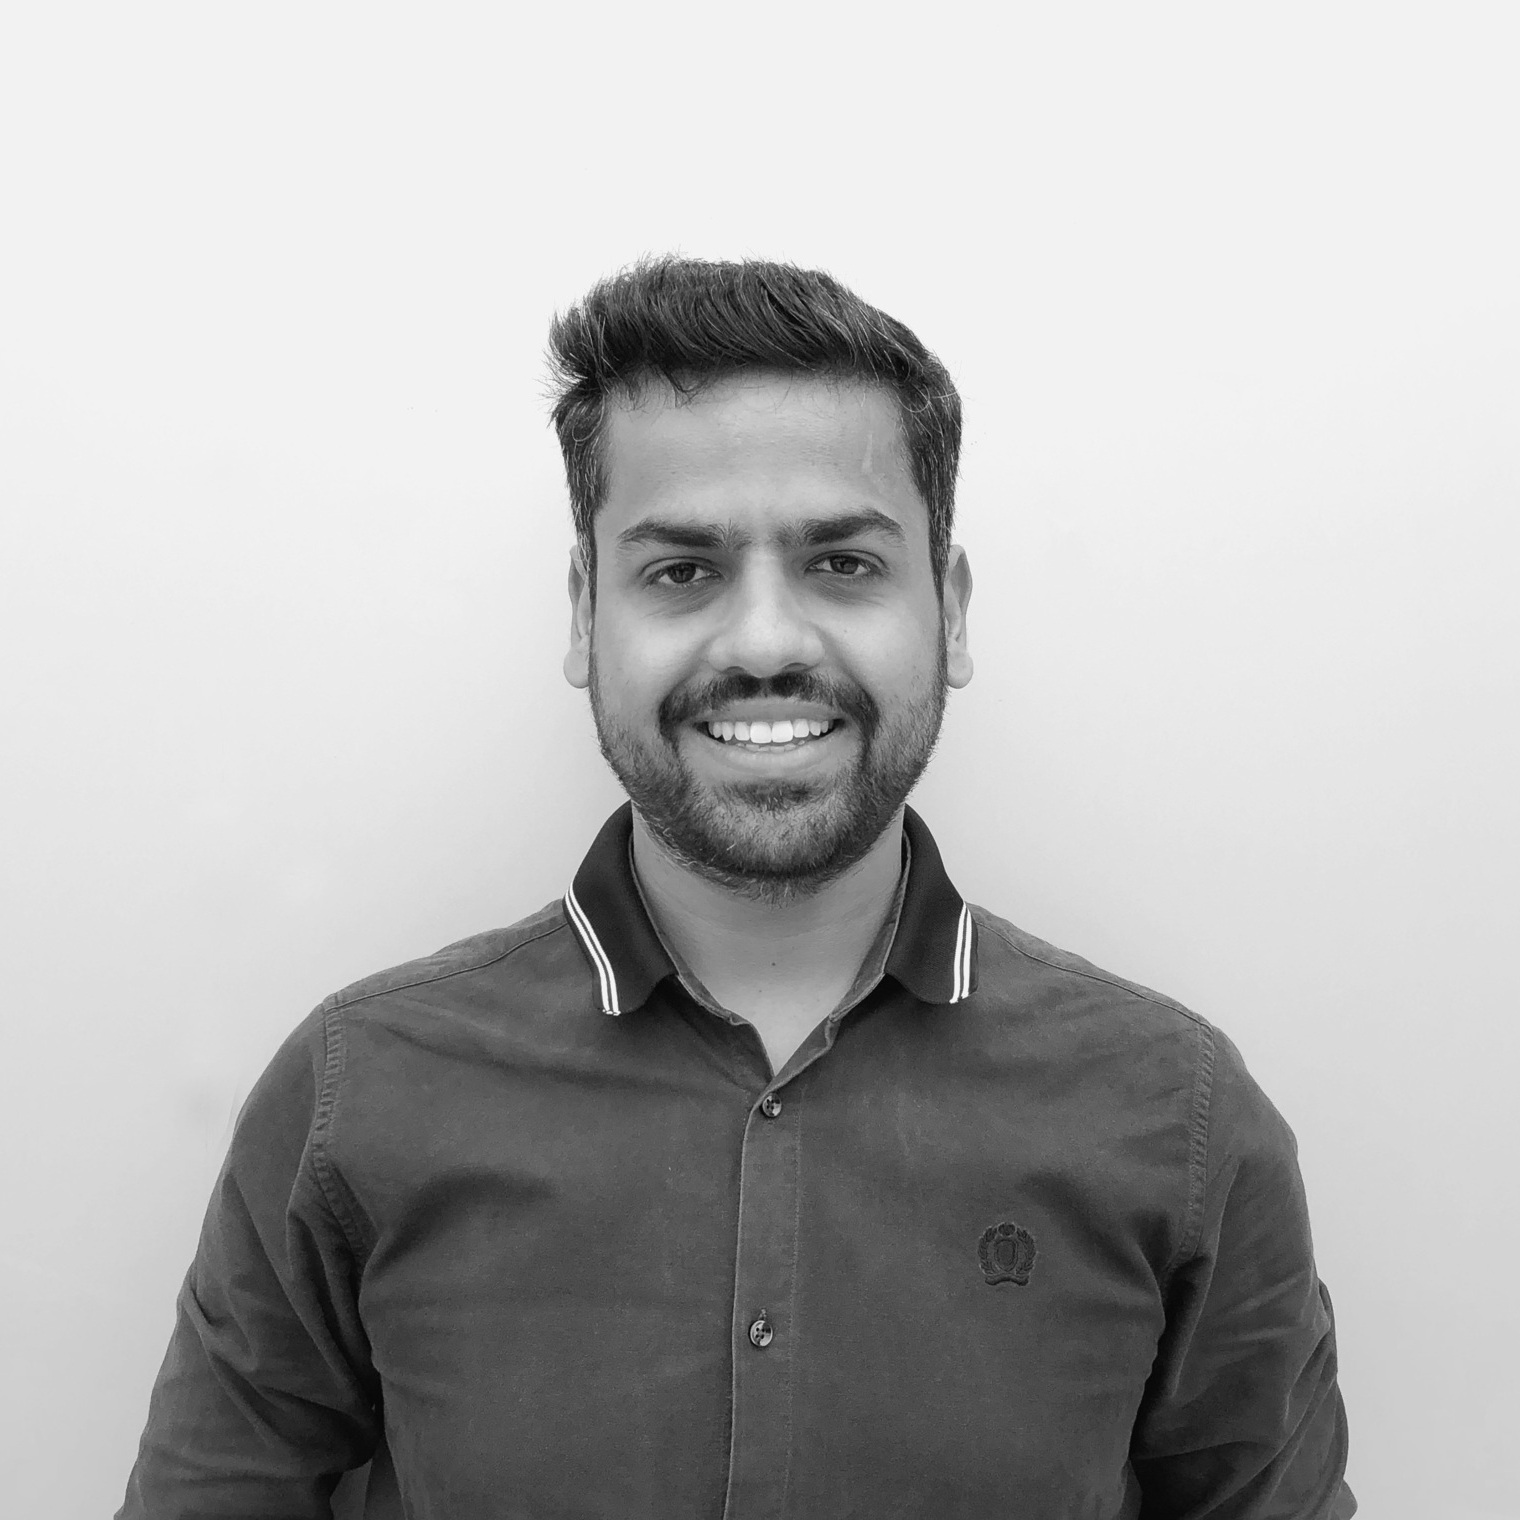 bhanu nangru - 4+ years of experience in areas like consumer research, brand health, and customer experience. Passionate about making a difference in the education space and building learning organisations. A gastronome who enjoys cooking, swimming and boxing.LinkedInTwitter